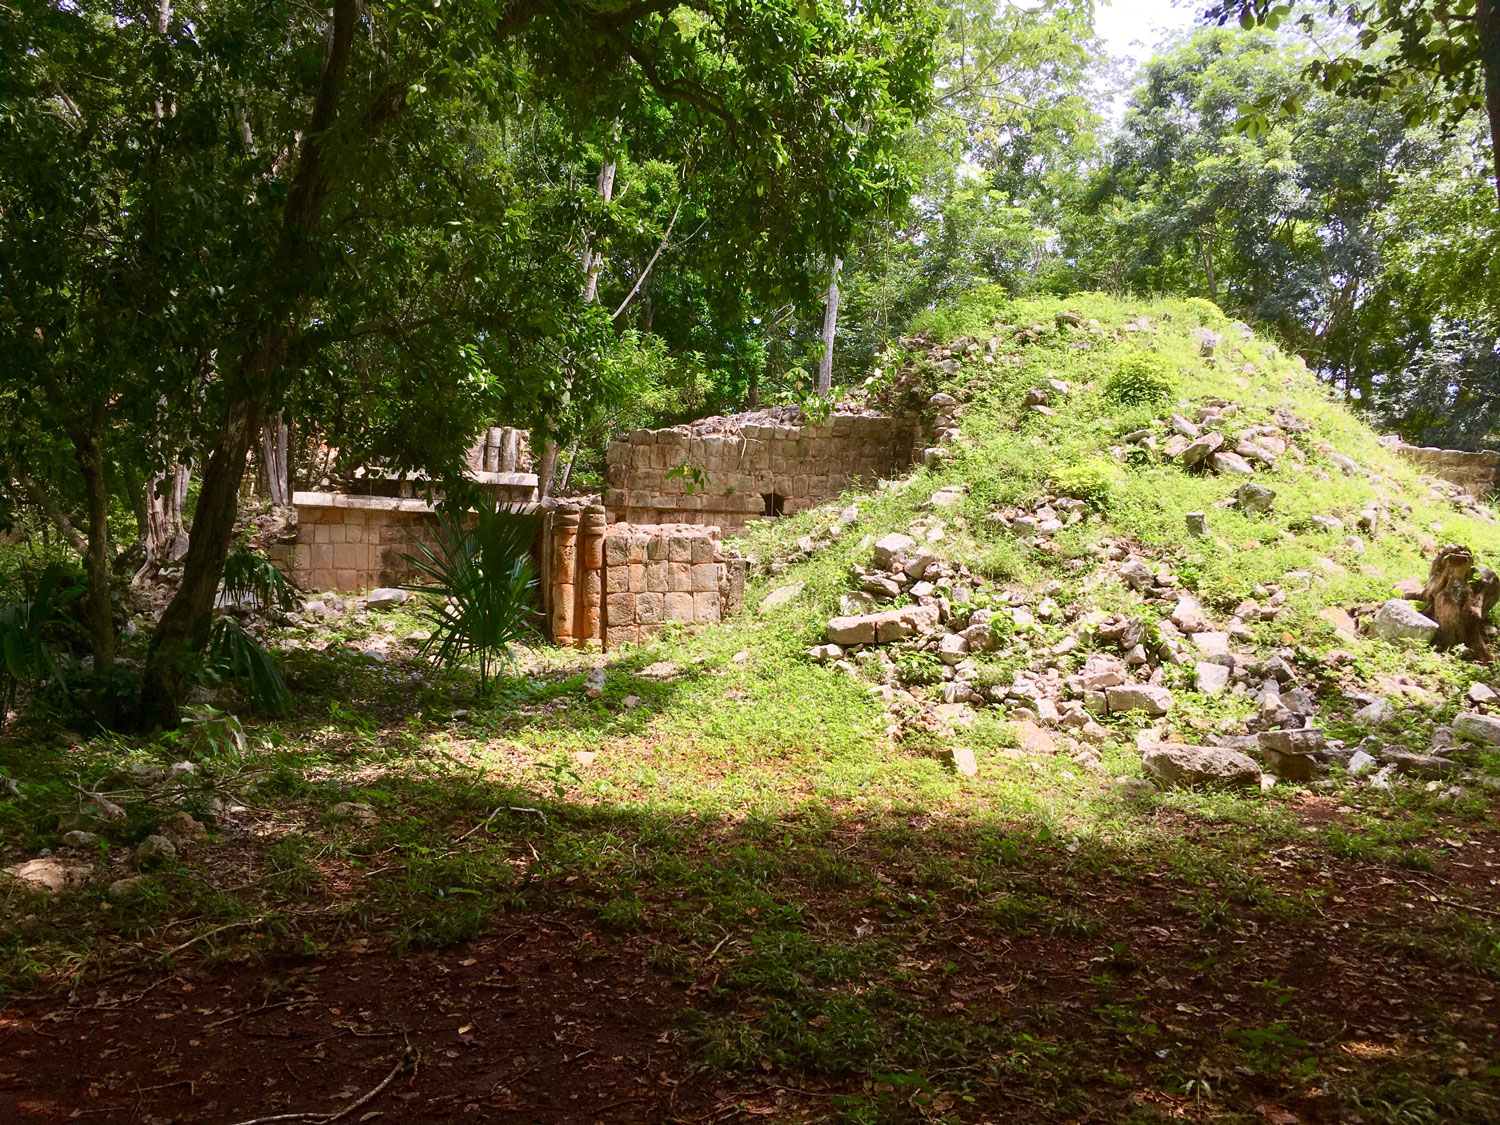 Ruins of domestic structures (2B5) near the Palace.